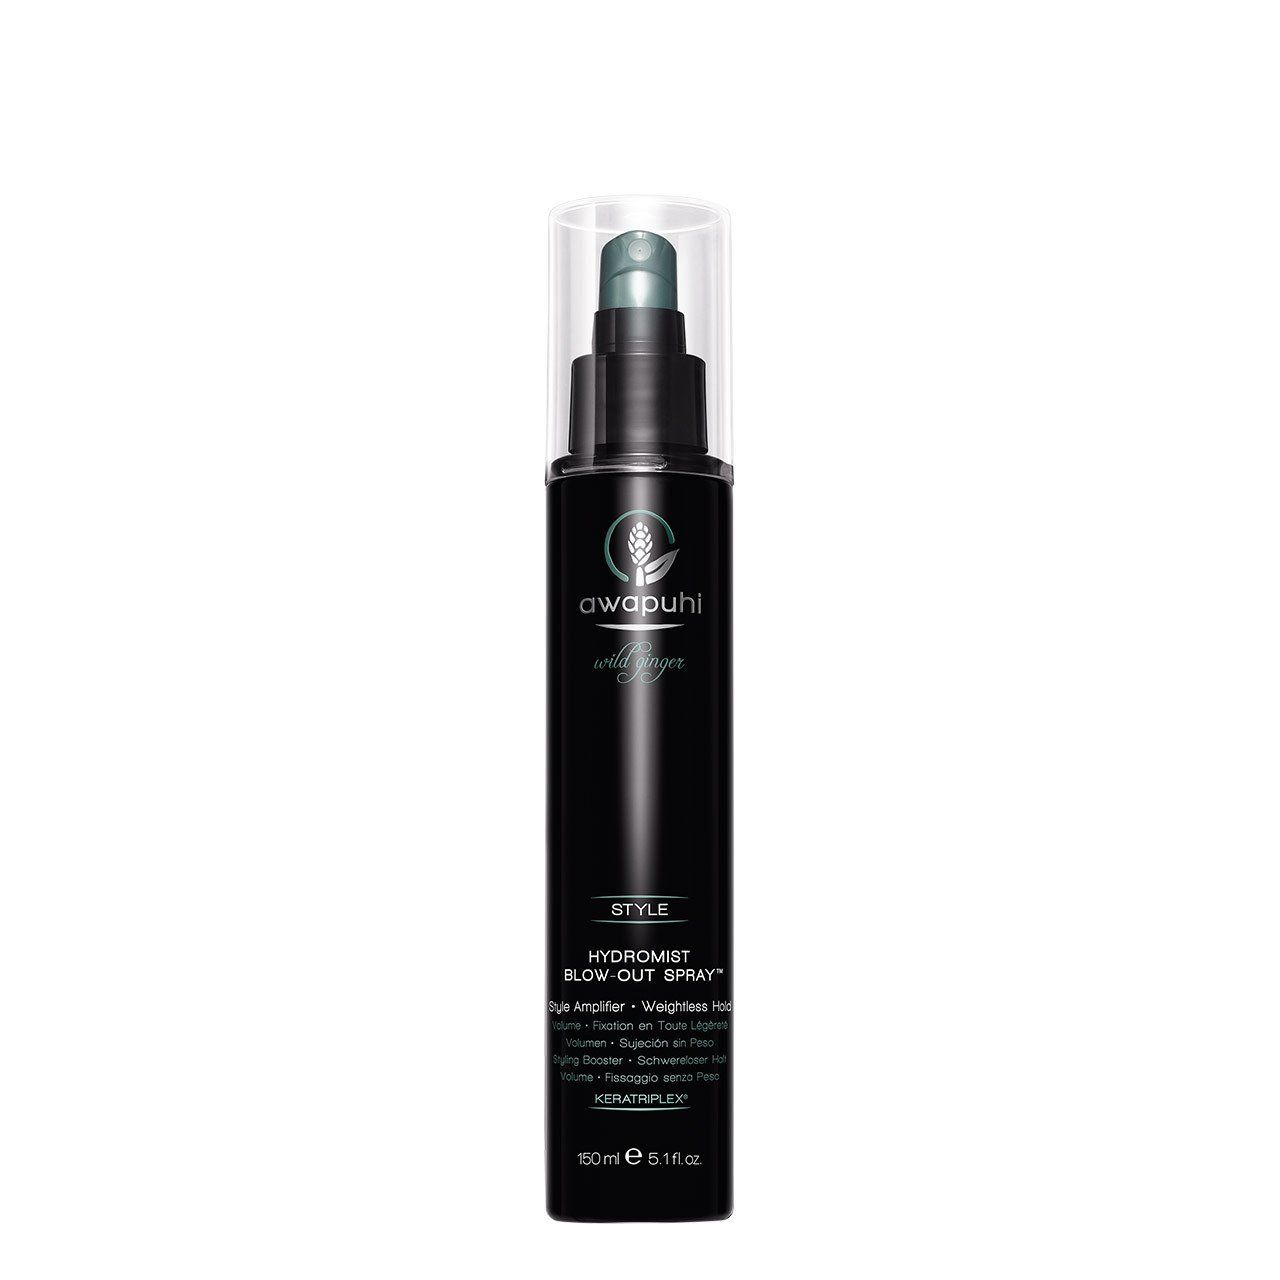 Paul Mitchell – Awapuhi Wild Ginger Hydromist Blow Out Spray – 5.1 oz  – Peinados